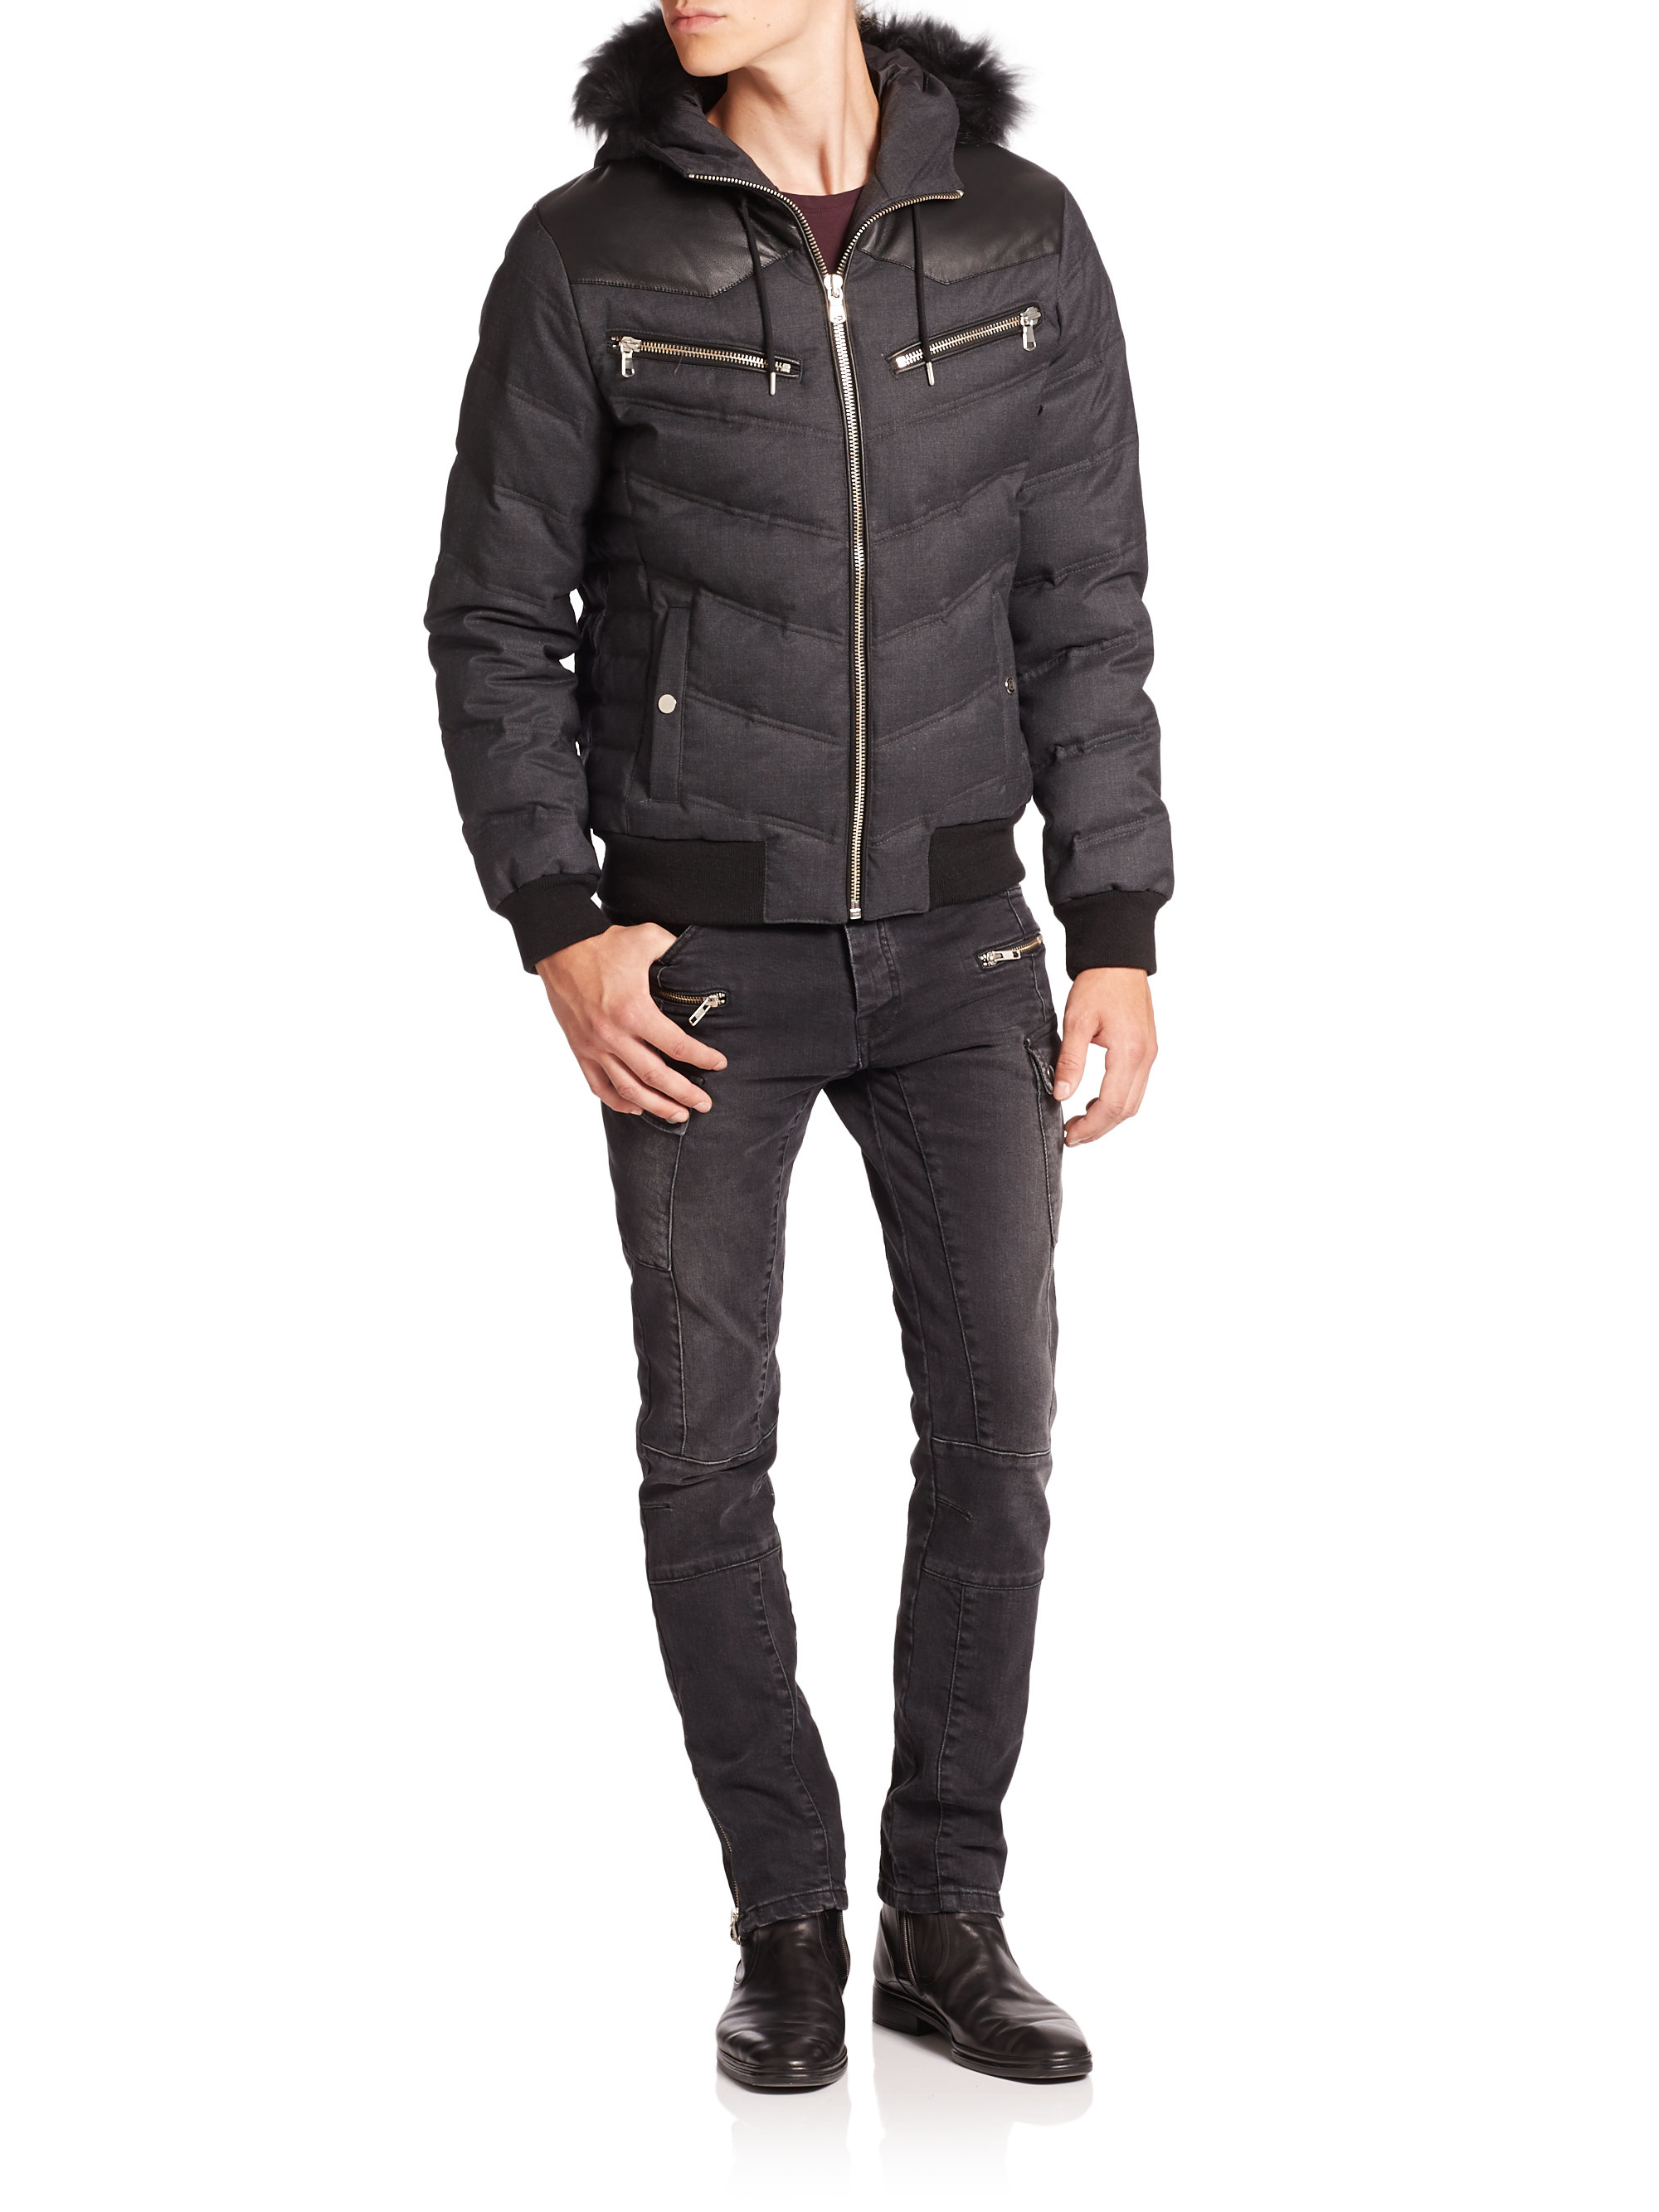 5b0a131d75 The Kooples Sport Fur-trimmed Puffer Jacket in Gray for Men - Lyst